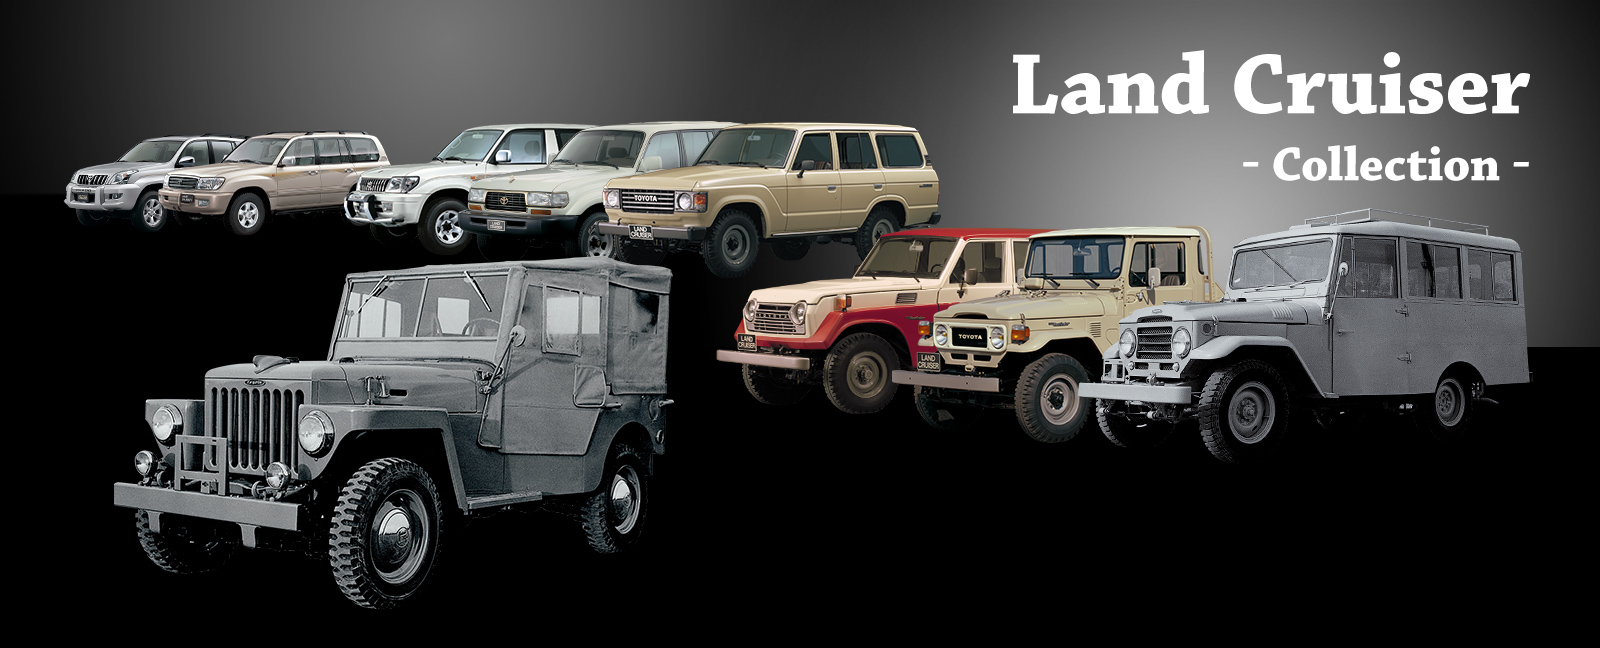 Vehicle Heritage, Land Cruiser, Collection